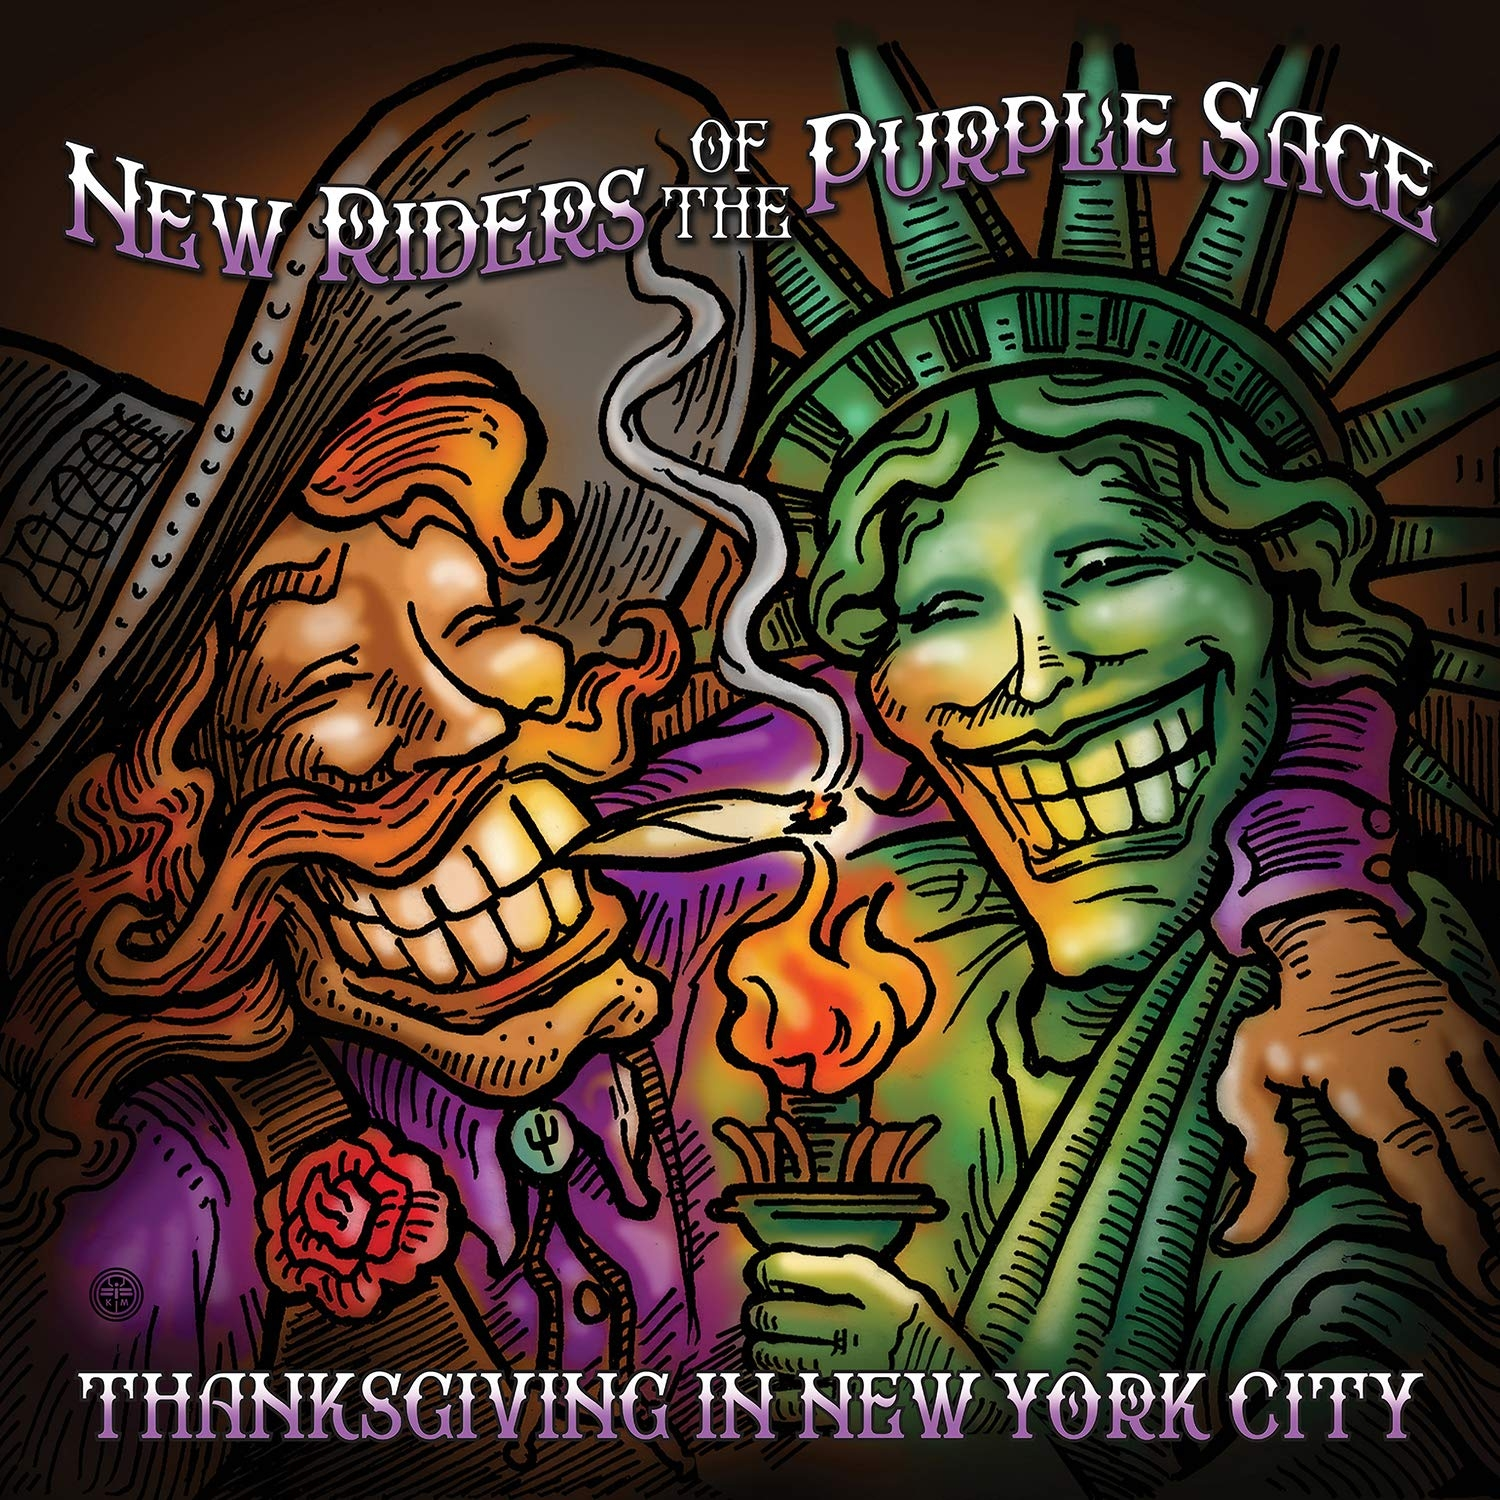 Thanksgiving In New York City Live 1972 (2CD)